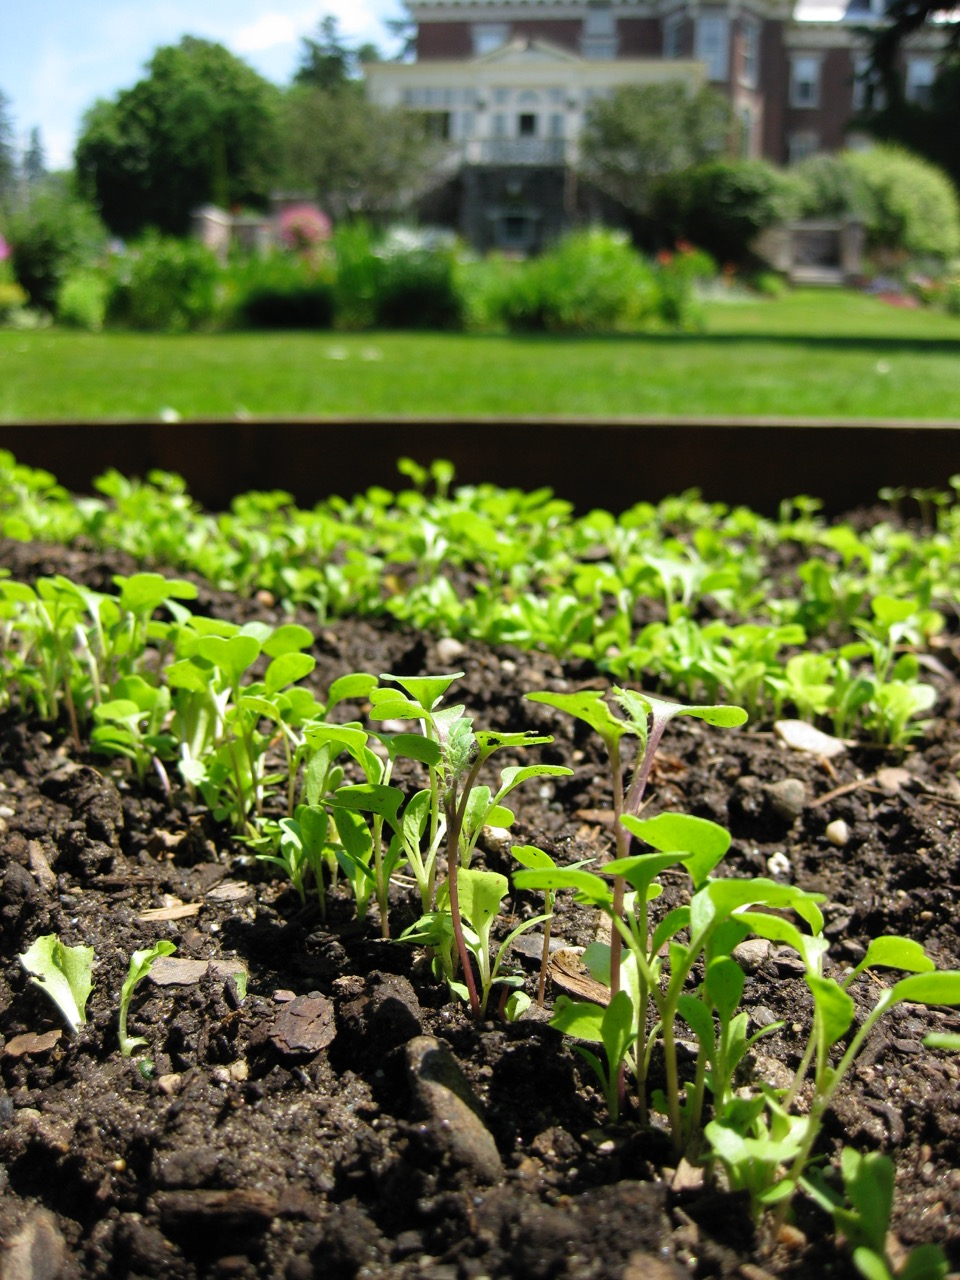 Sprouting plants in gardens at WSInn